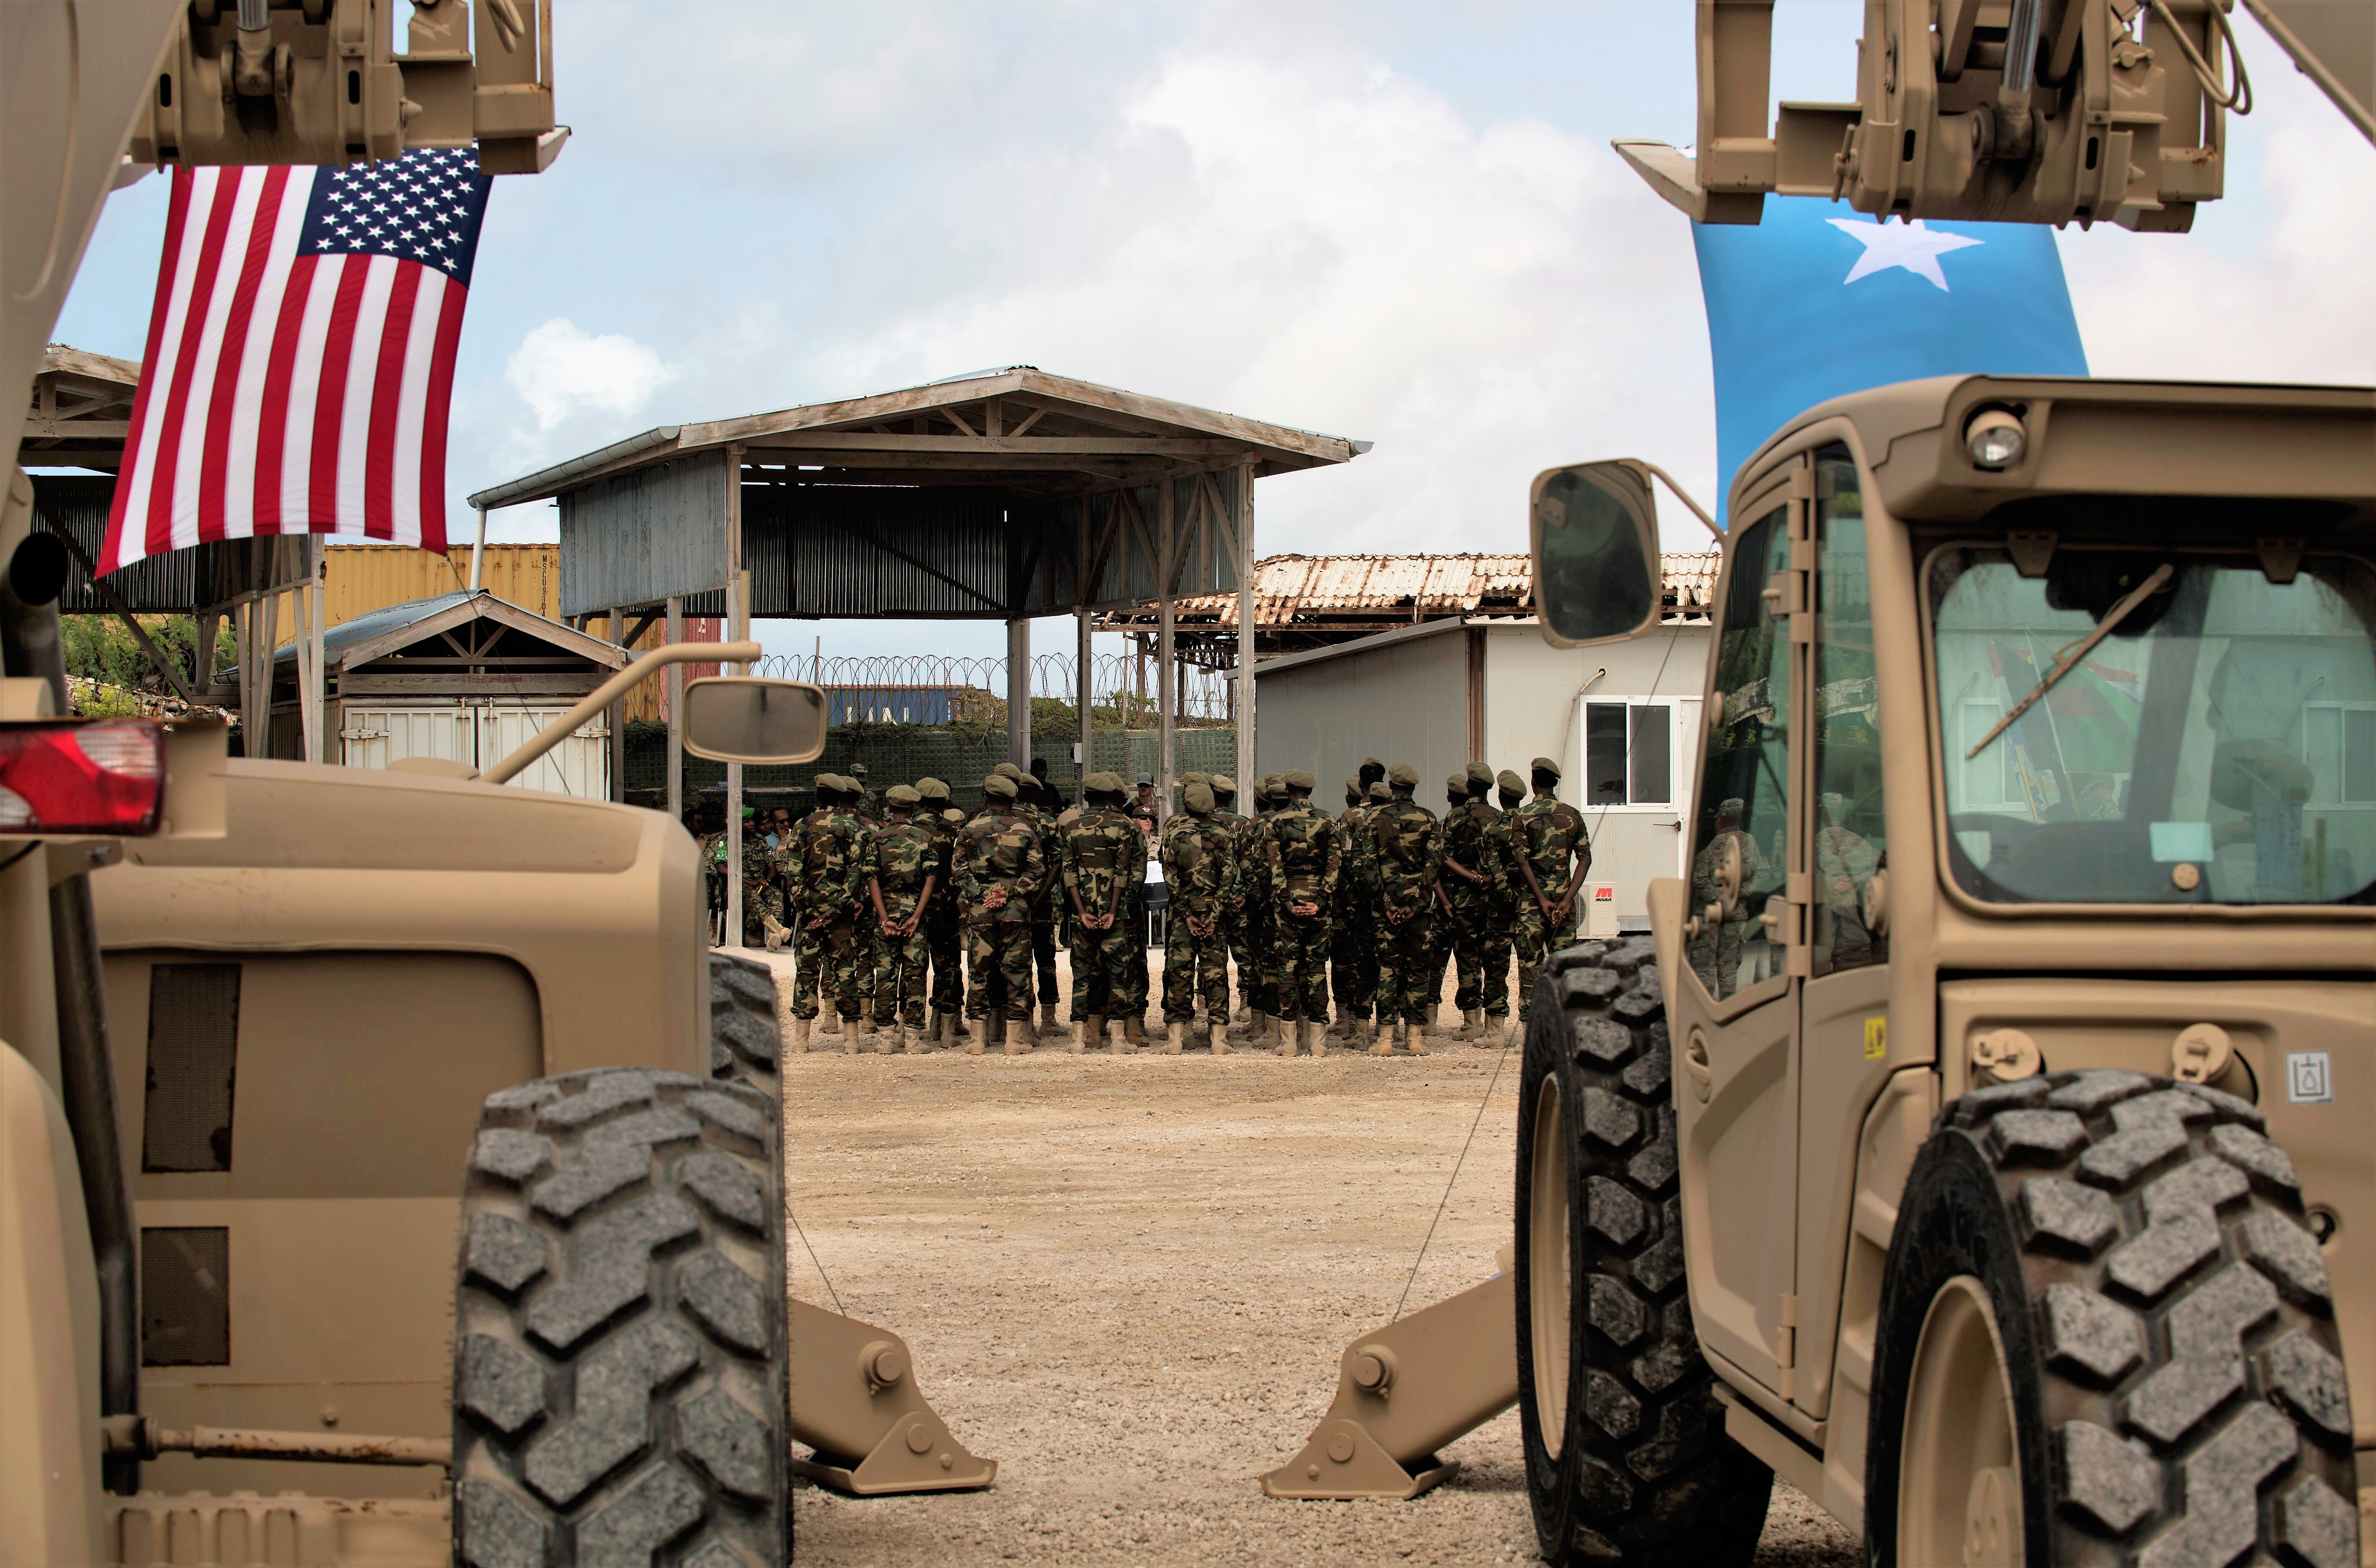 Somali national army soldiers stand in formation during a logistics course graduation ceremony.   Soldiers from Somali's special forces DANAB battalion spent 14 weeks training with the U.S. 10th Mountain division on the importance of logistical operation as well as the operation and maintenance of heavy equipment.  (Photo by MC2 (SW/AW) Evan Parker. Released)